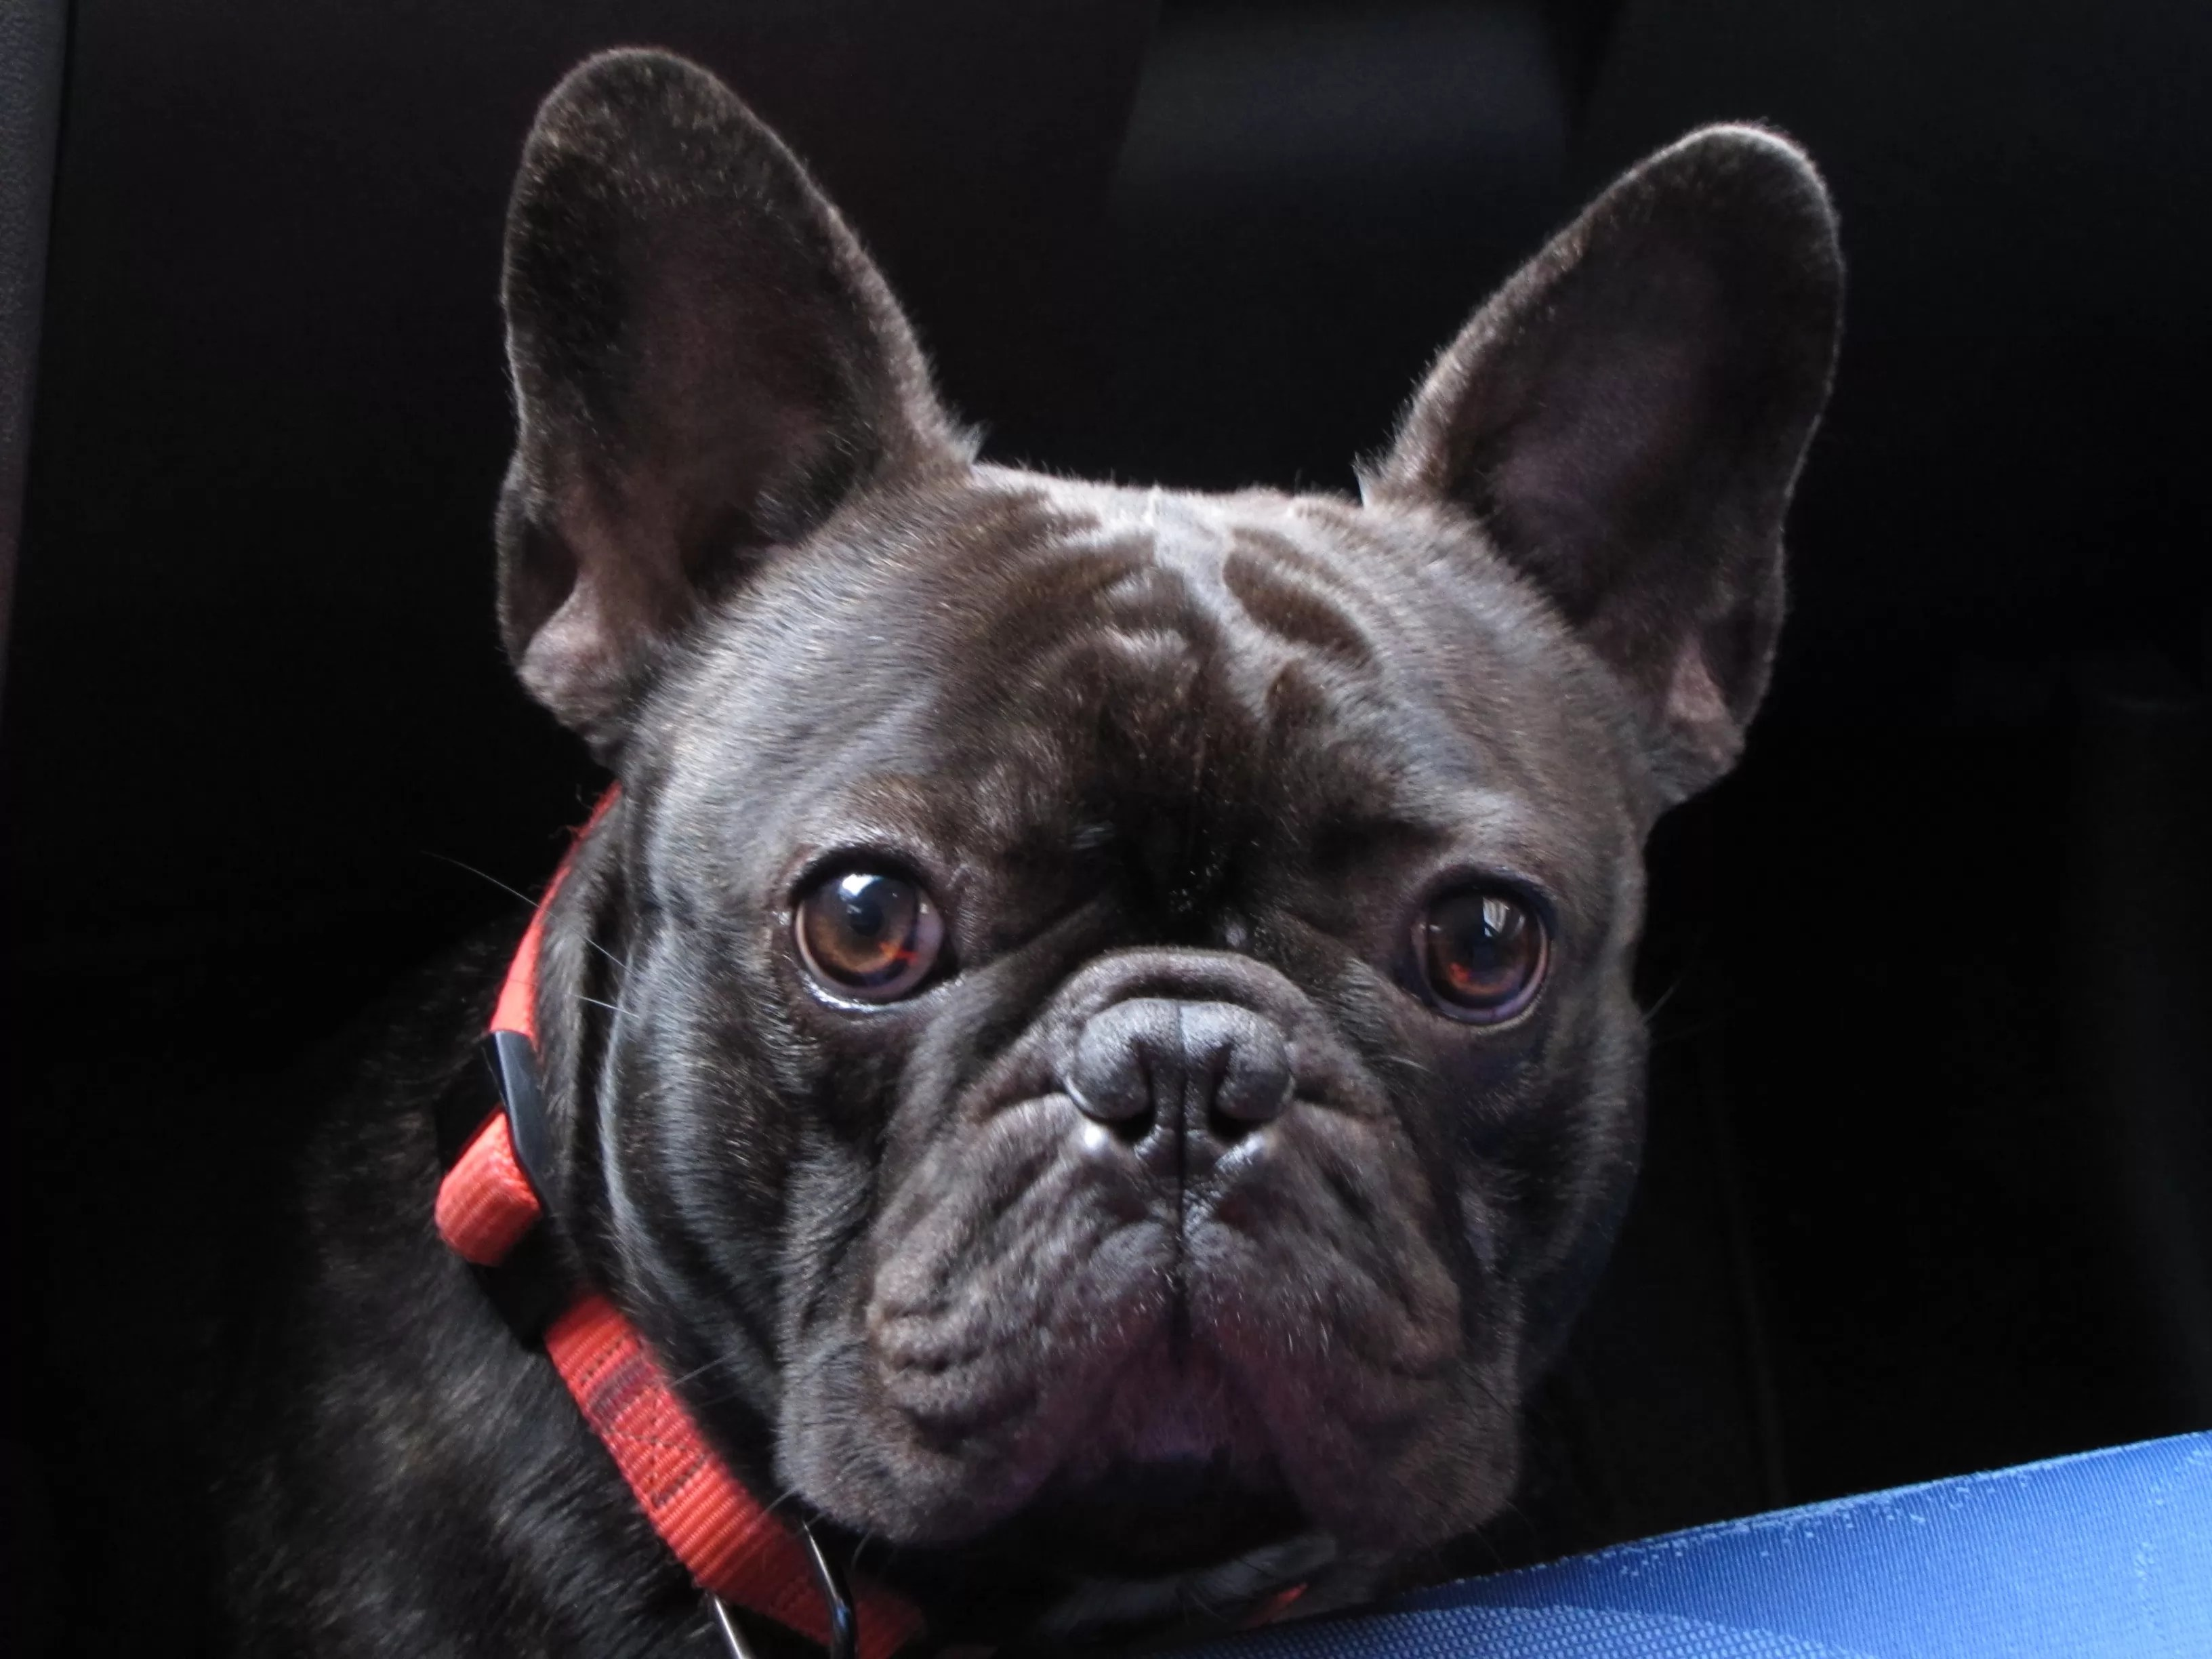 Cute Frenchie Wallpaper 12 Reasons Why You Should Never Own French Bulldogs